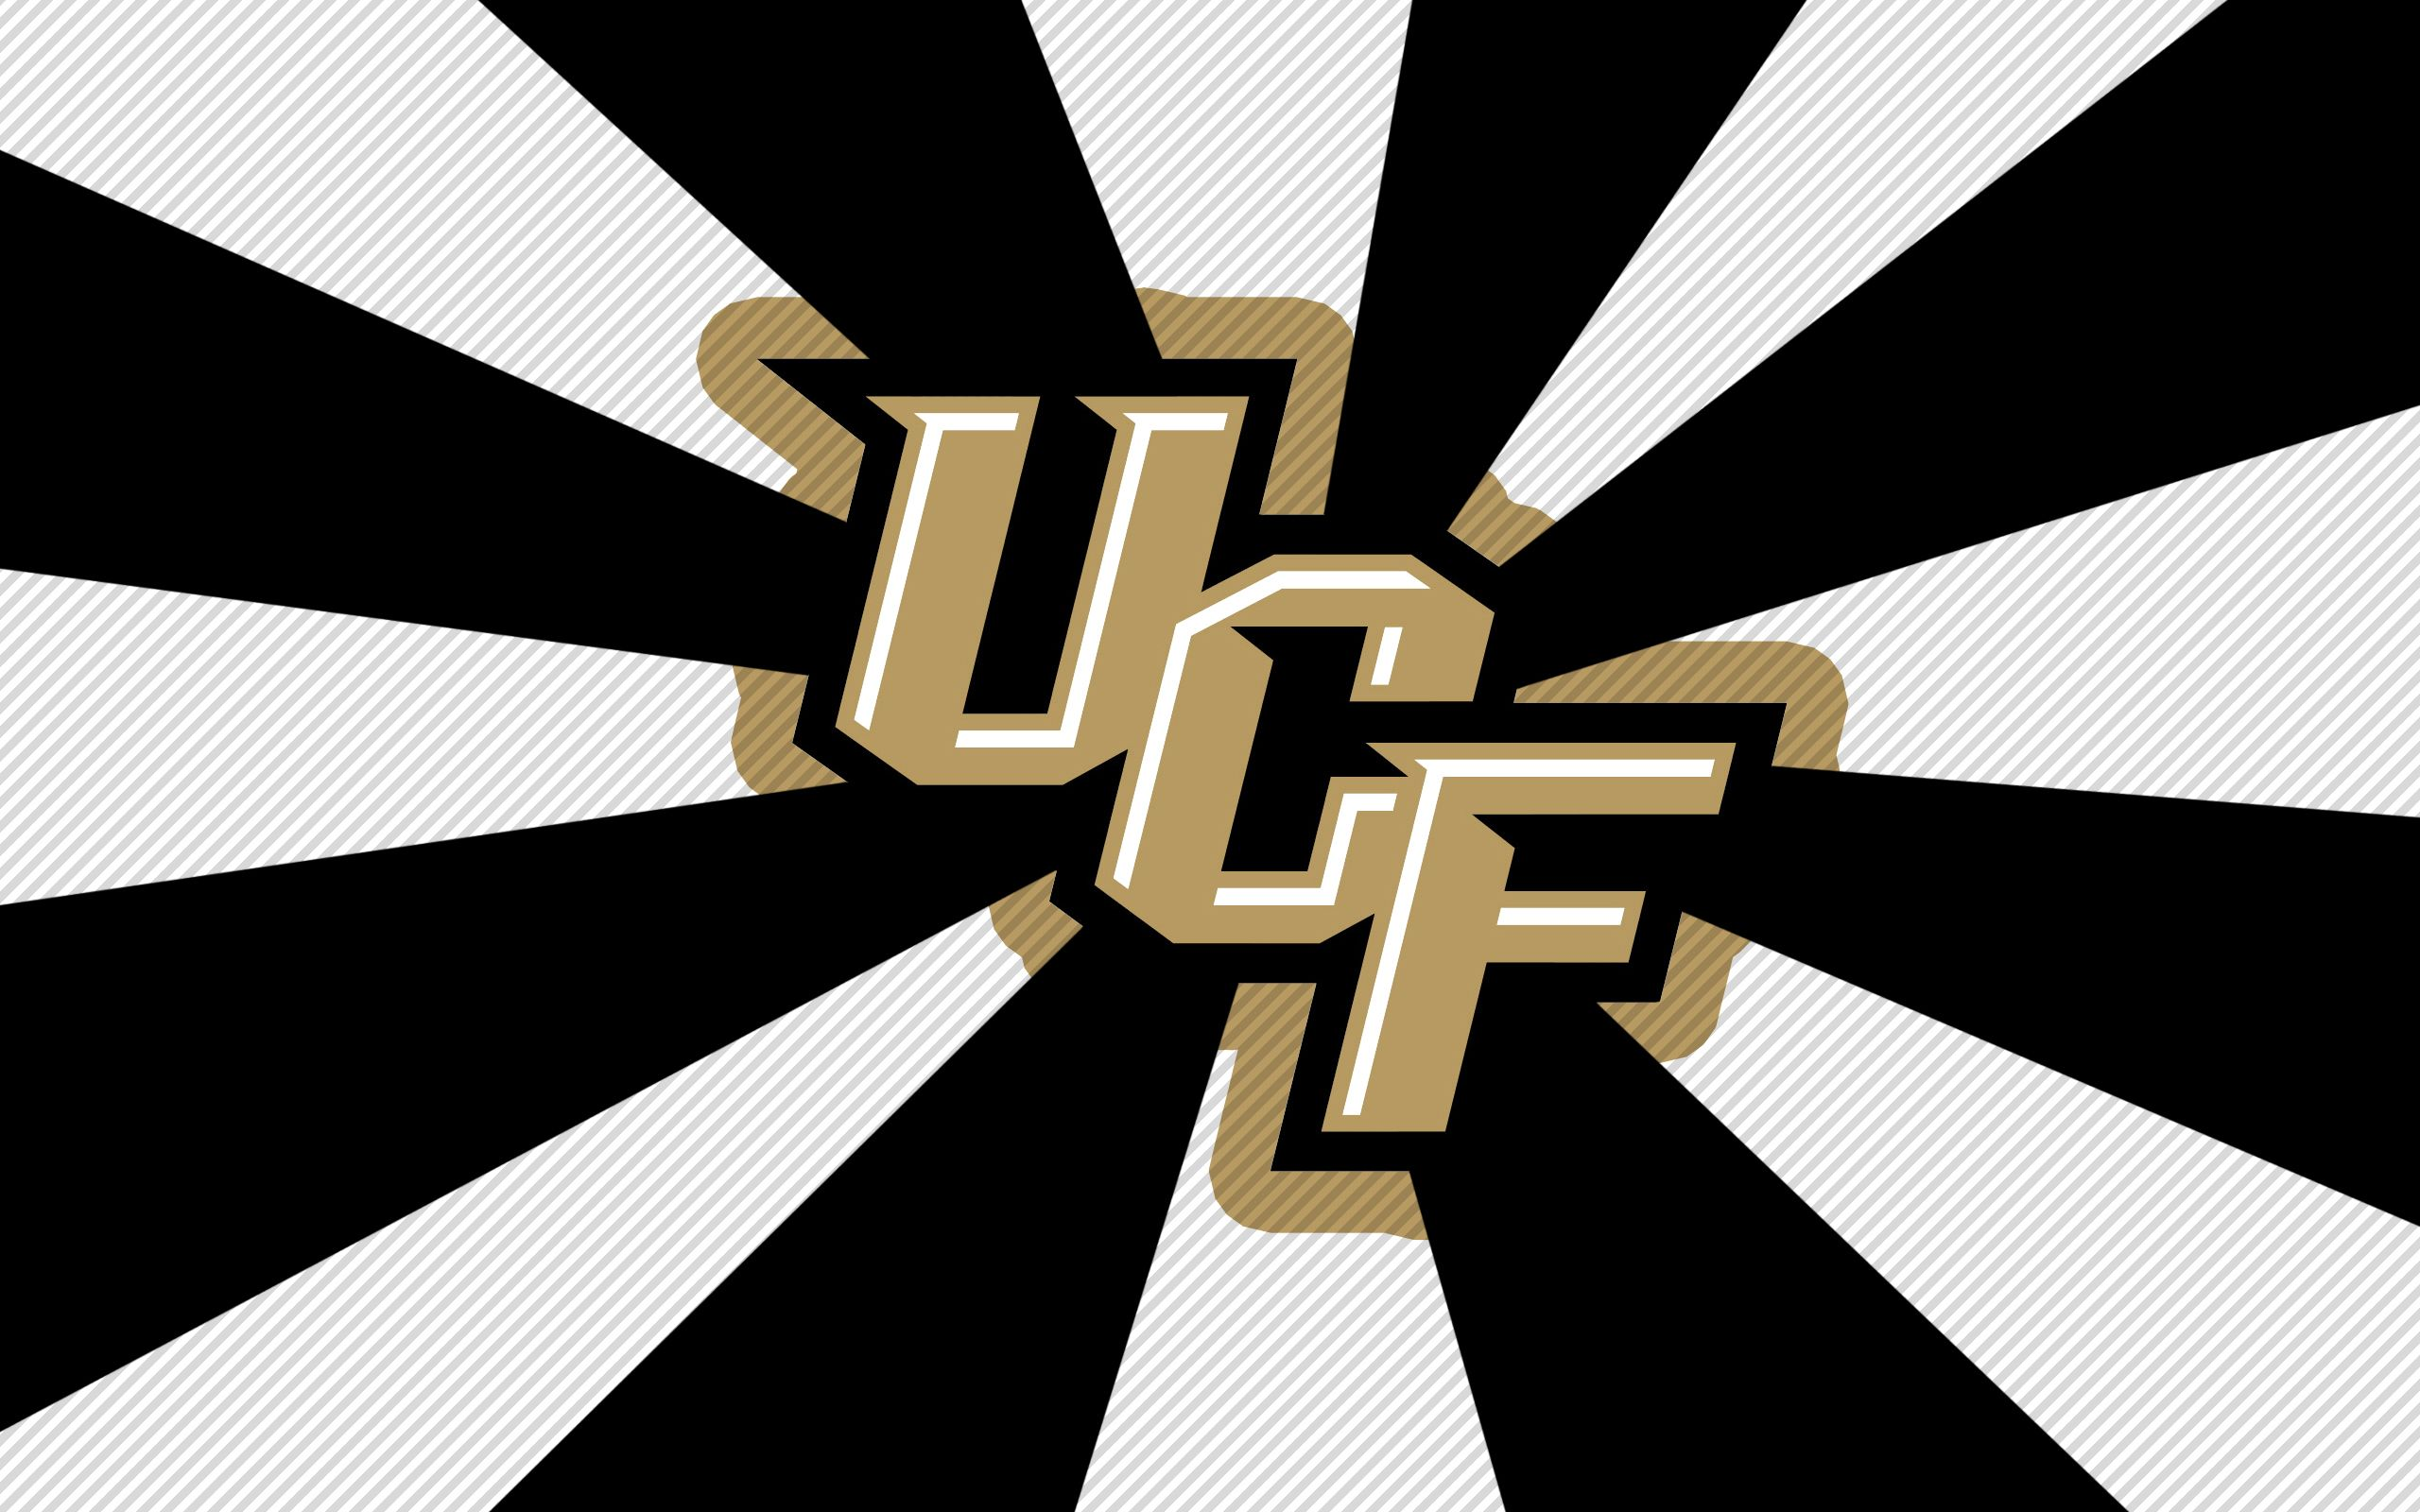 Car Stickers Wallpapers Download Ucf Wallpaper Gallery